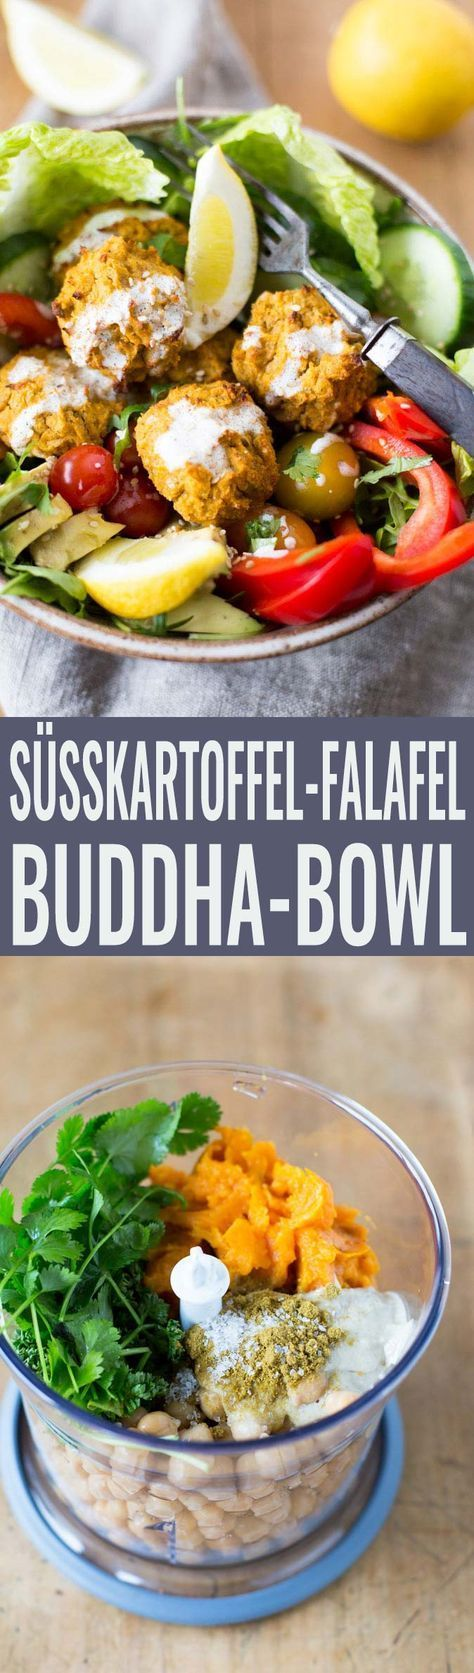 Photo of Vegane Süßkartoffel-Falafel Buddha Bowl – Kochkarussell